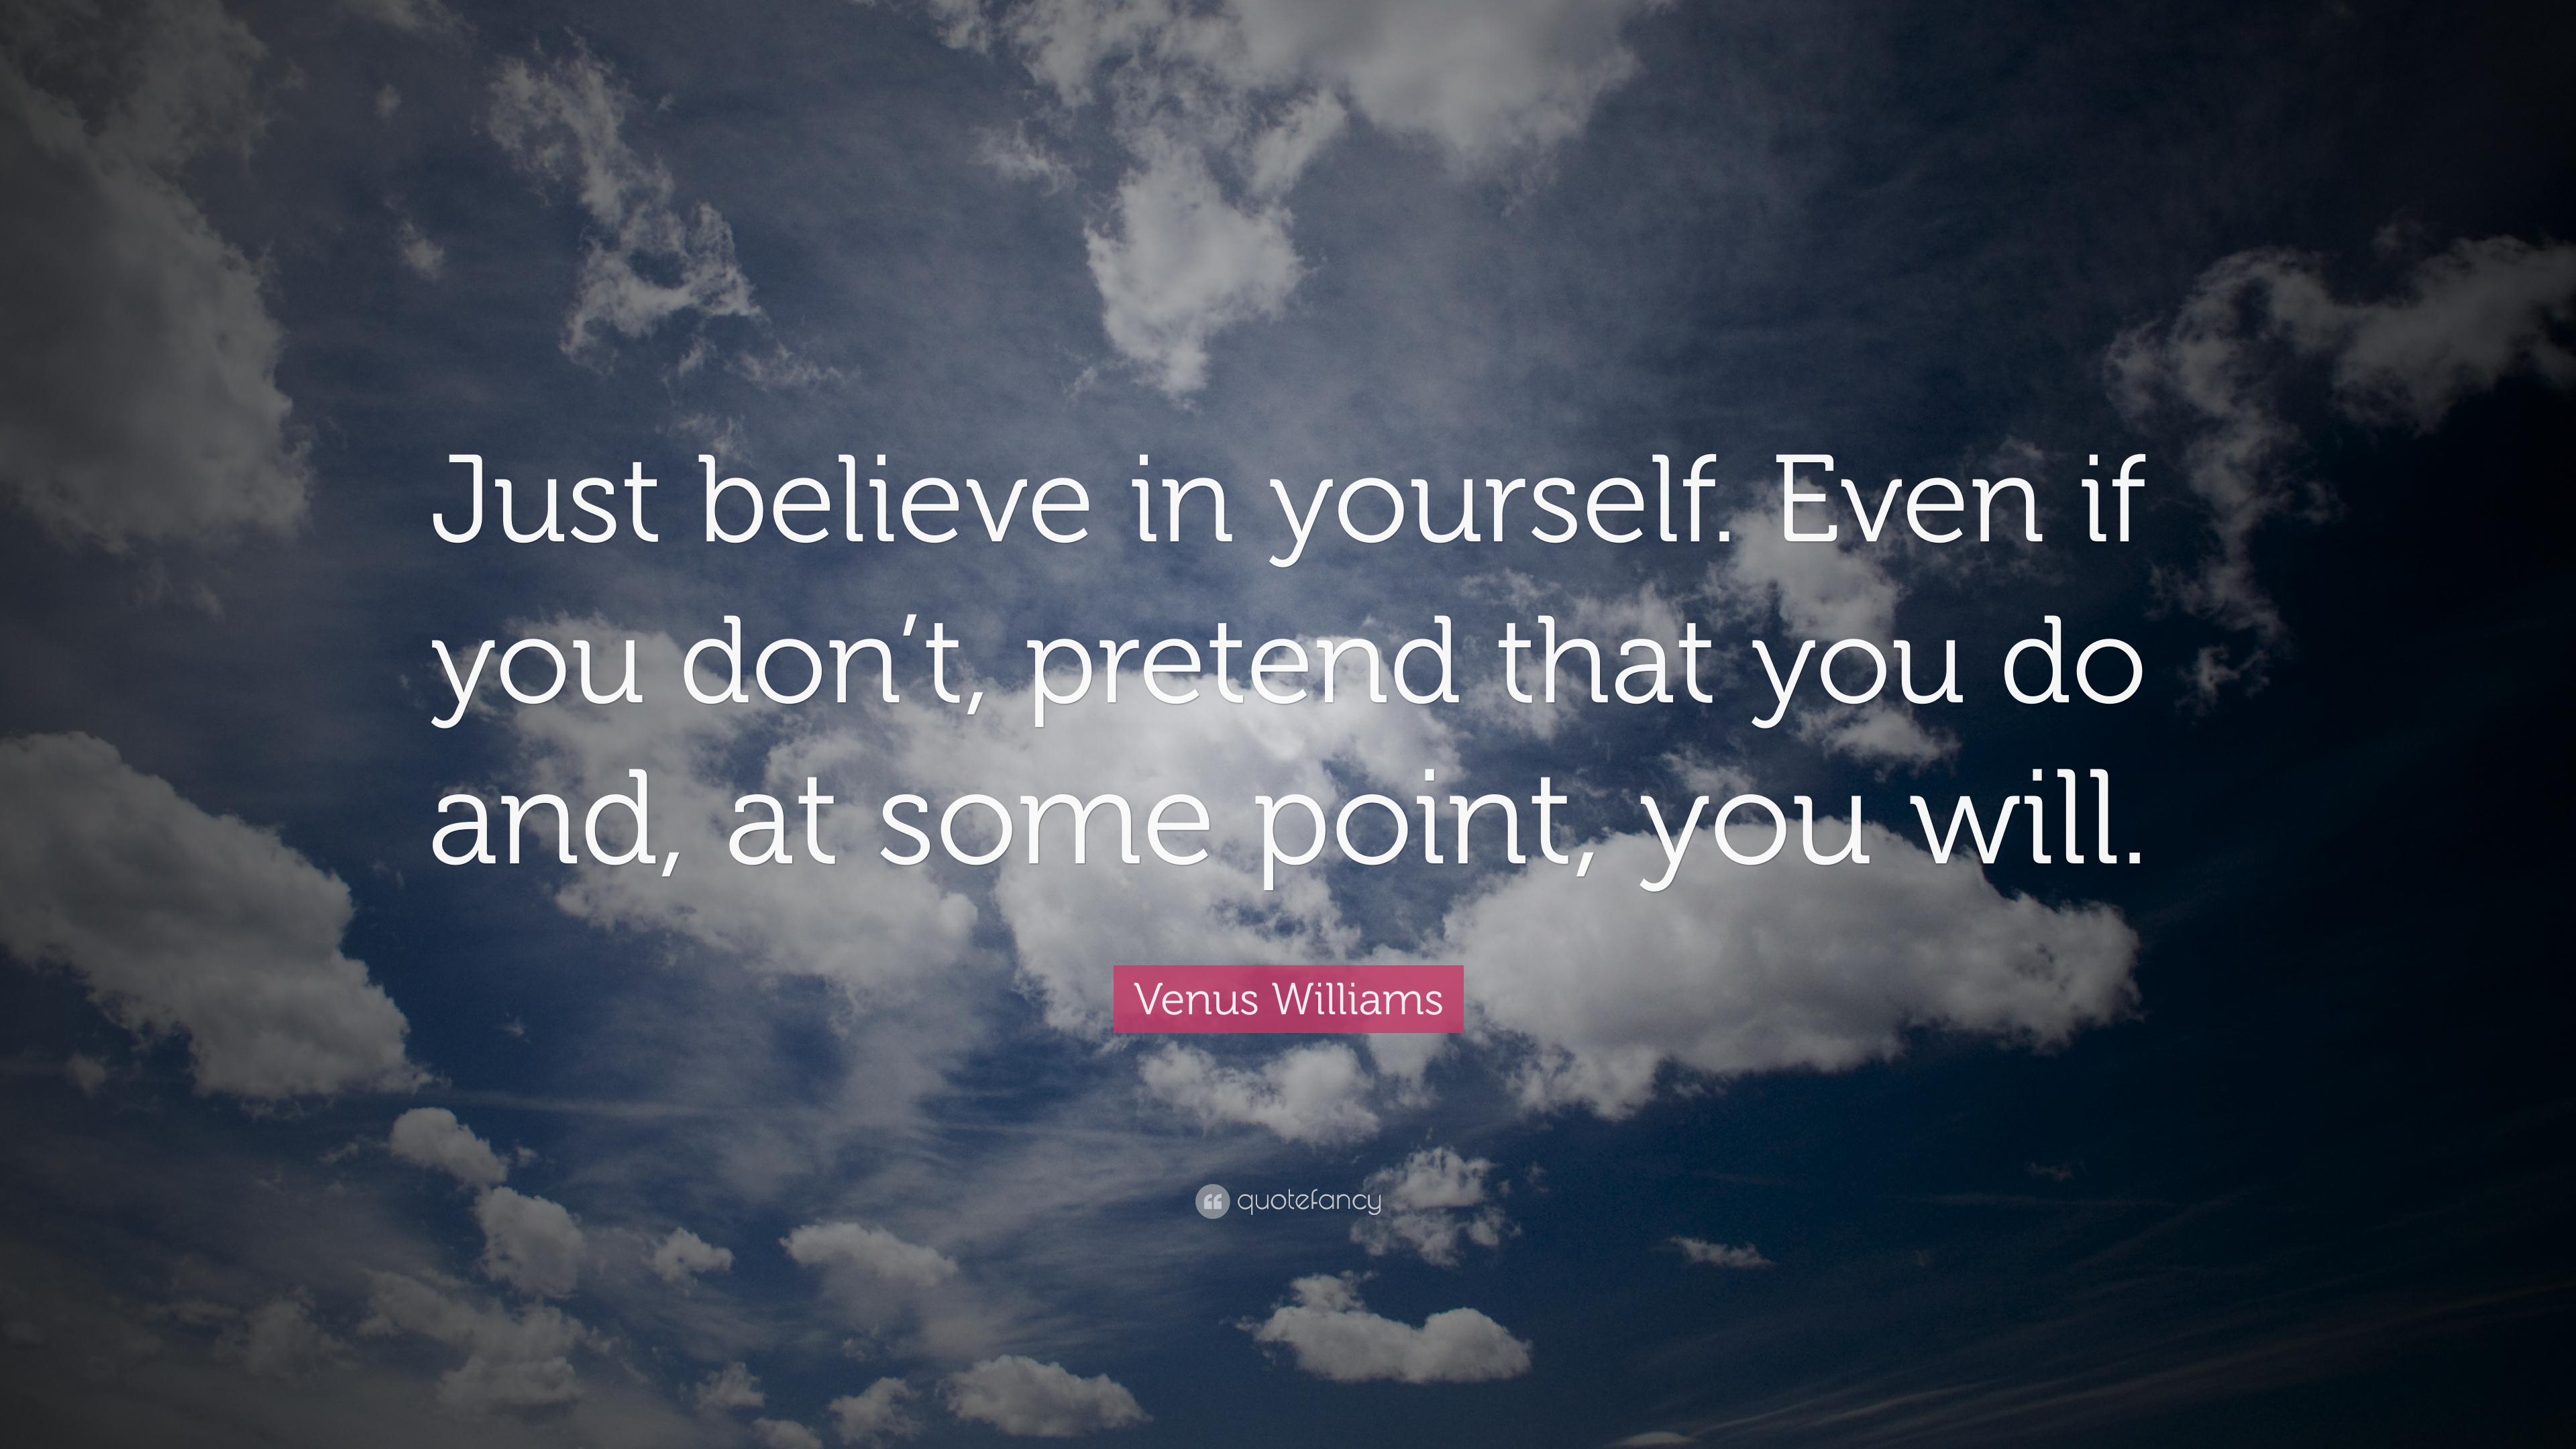 Venus Williams Quote: U201cJust Believe In Yourself. Even If You Donu0027t